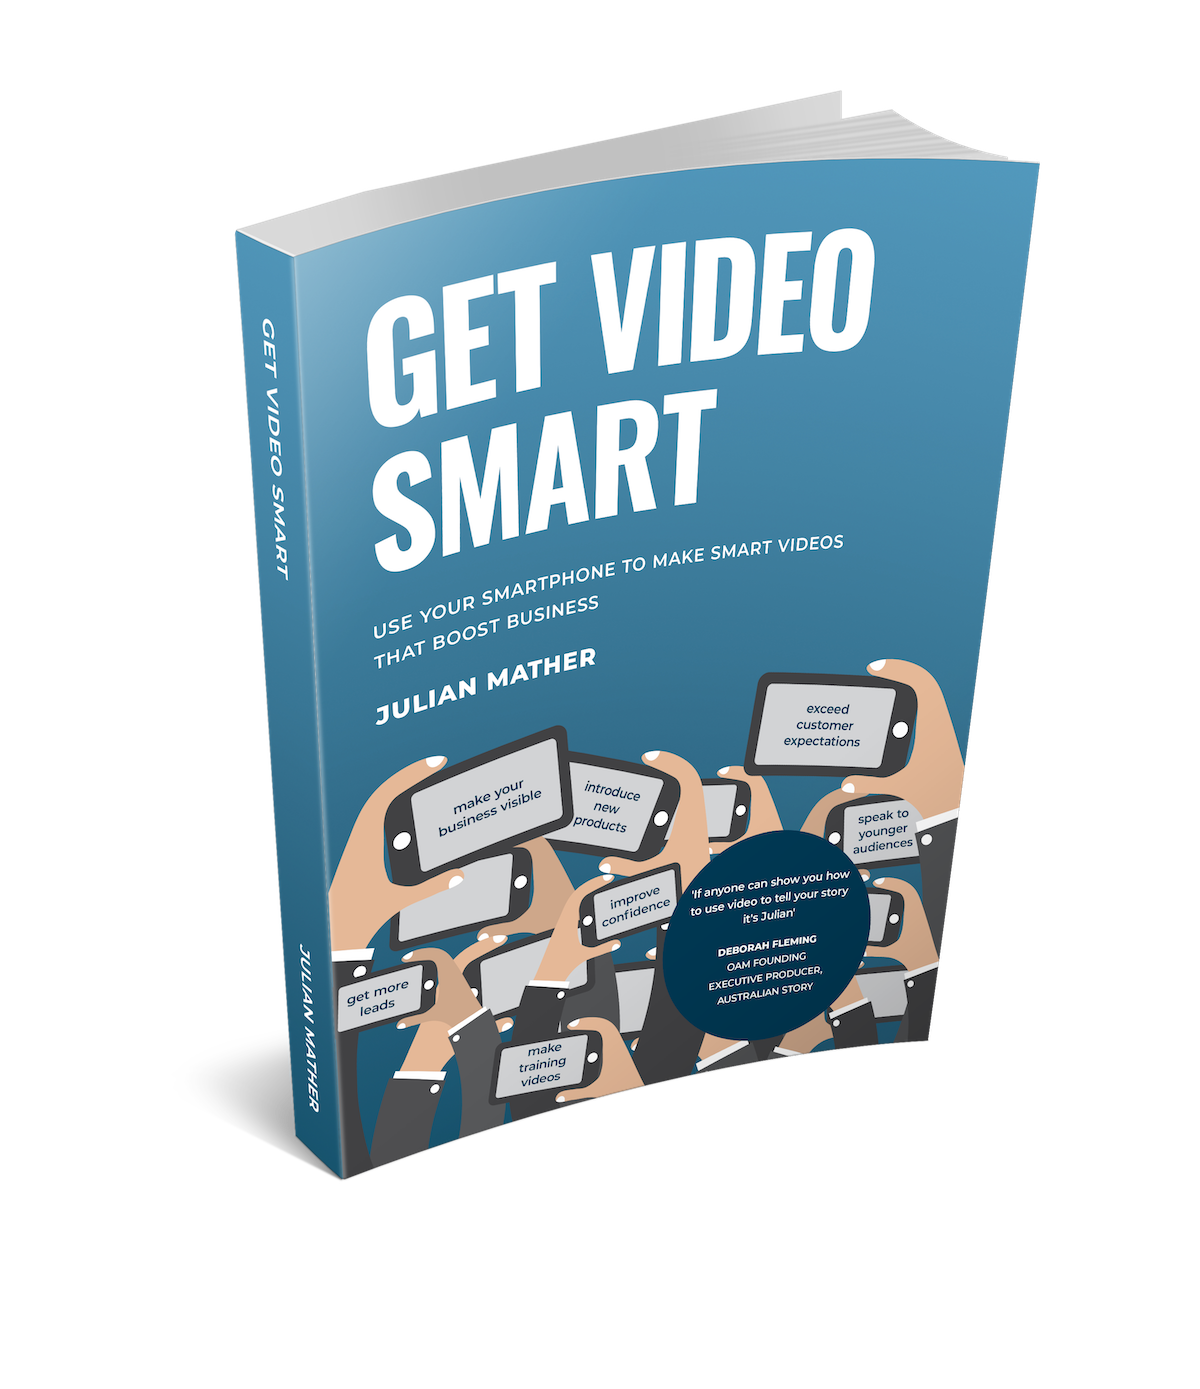 Get Video Smart Make Powerful Business Videos With Your Smartphone to shorten sales cycles, fill sales pipeline, improve engagement and win trust